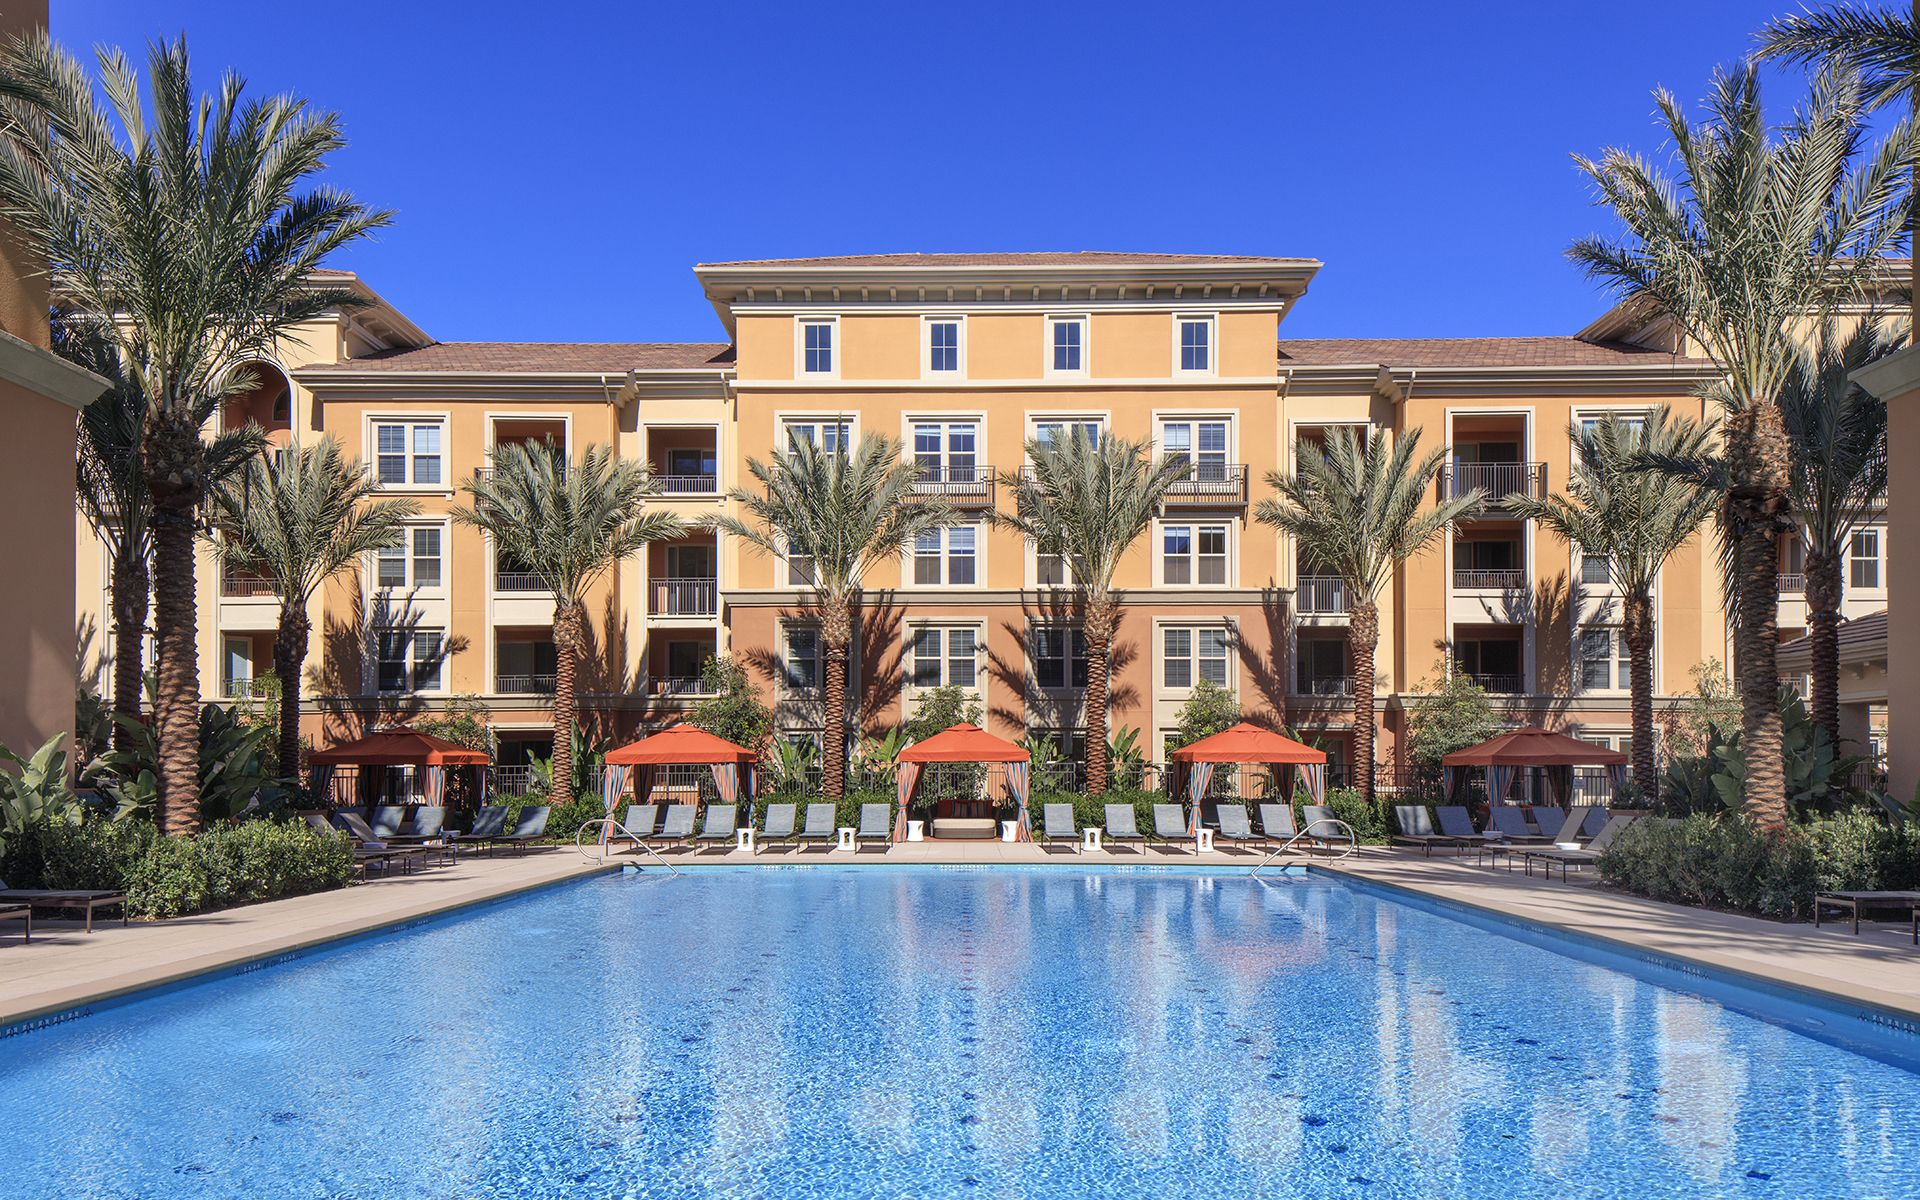 Exterior views of resort pool at the Gateway Apartment Homes in Orange, CA.